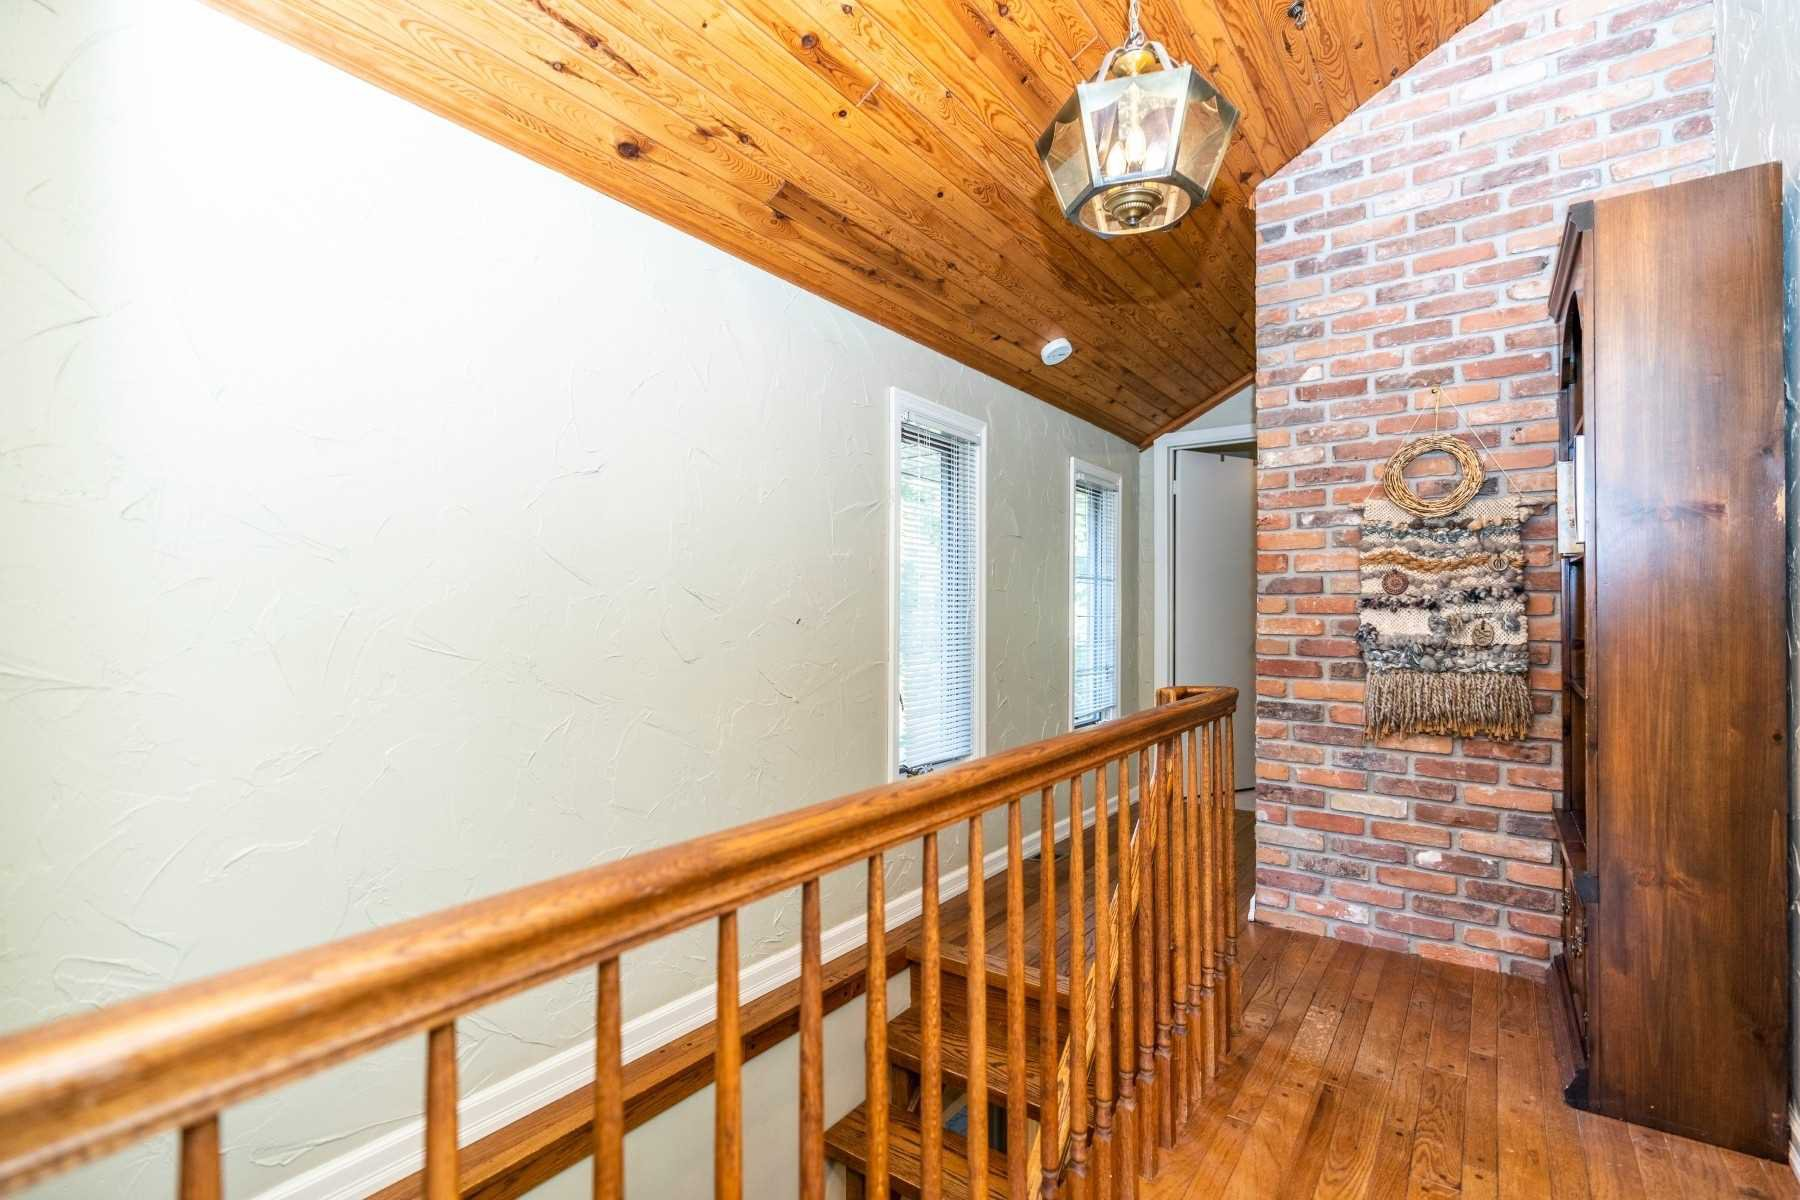 Photo 14: Photos: 914 Regent Drive in Oshawa: Eastdale House (2-Storey) for sale : MLS®# E4617219